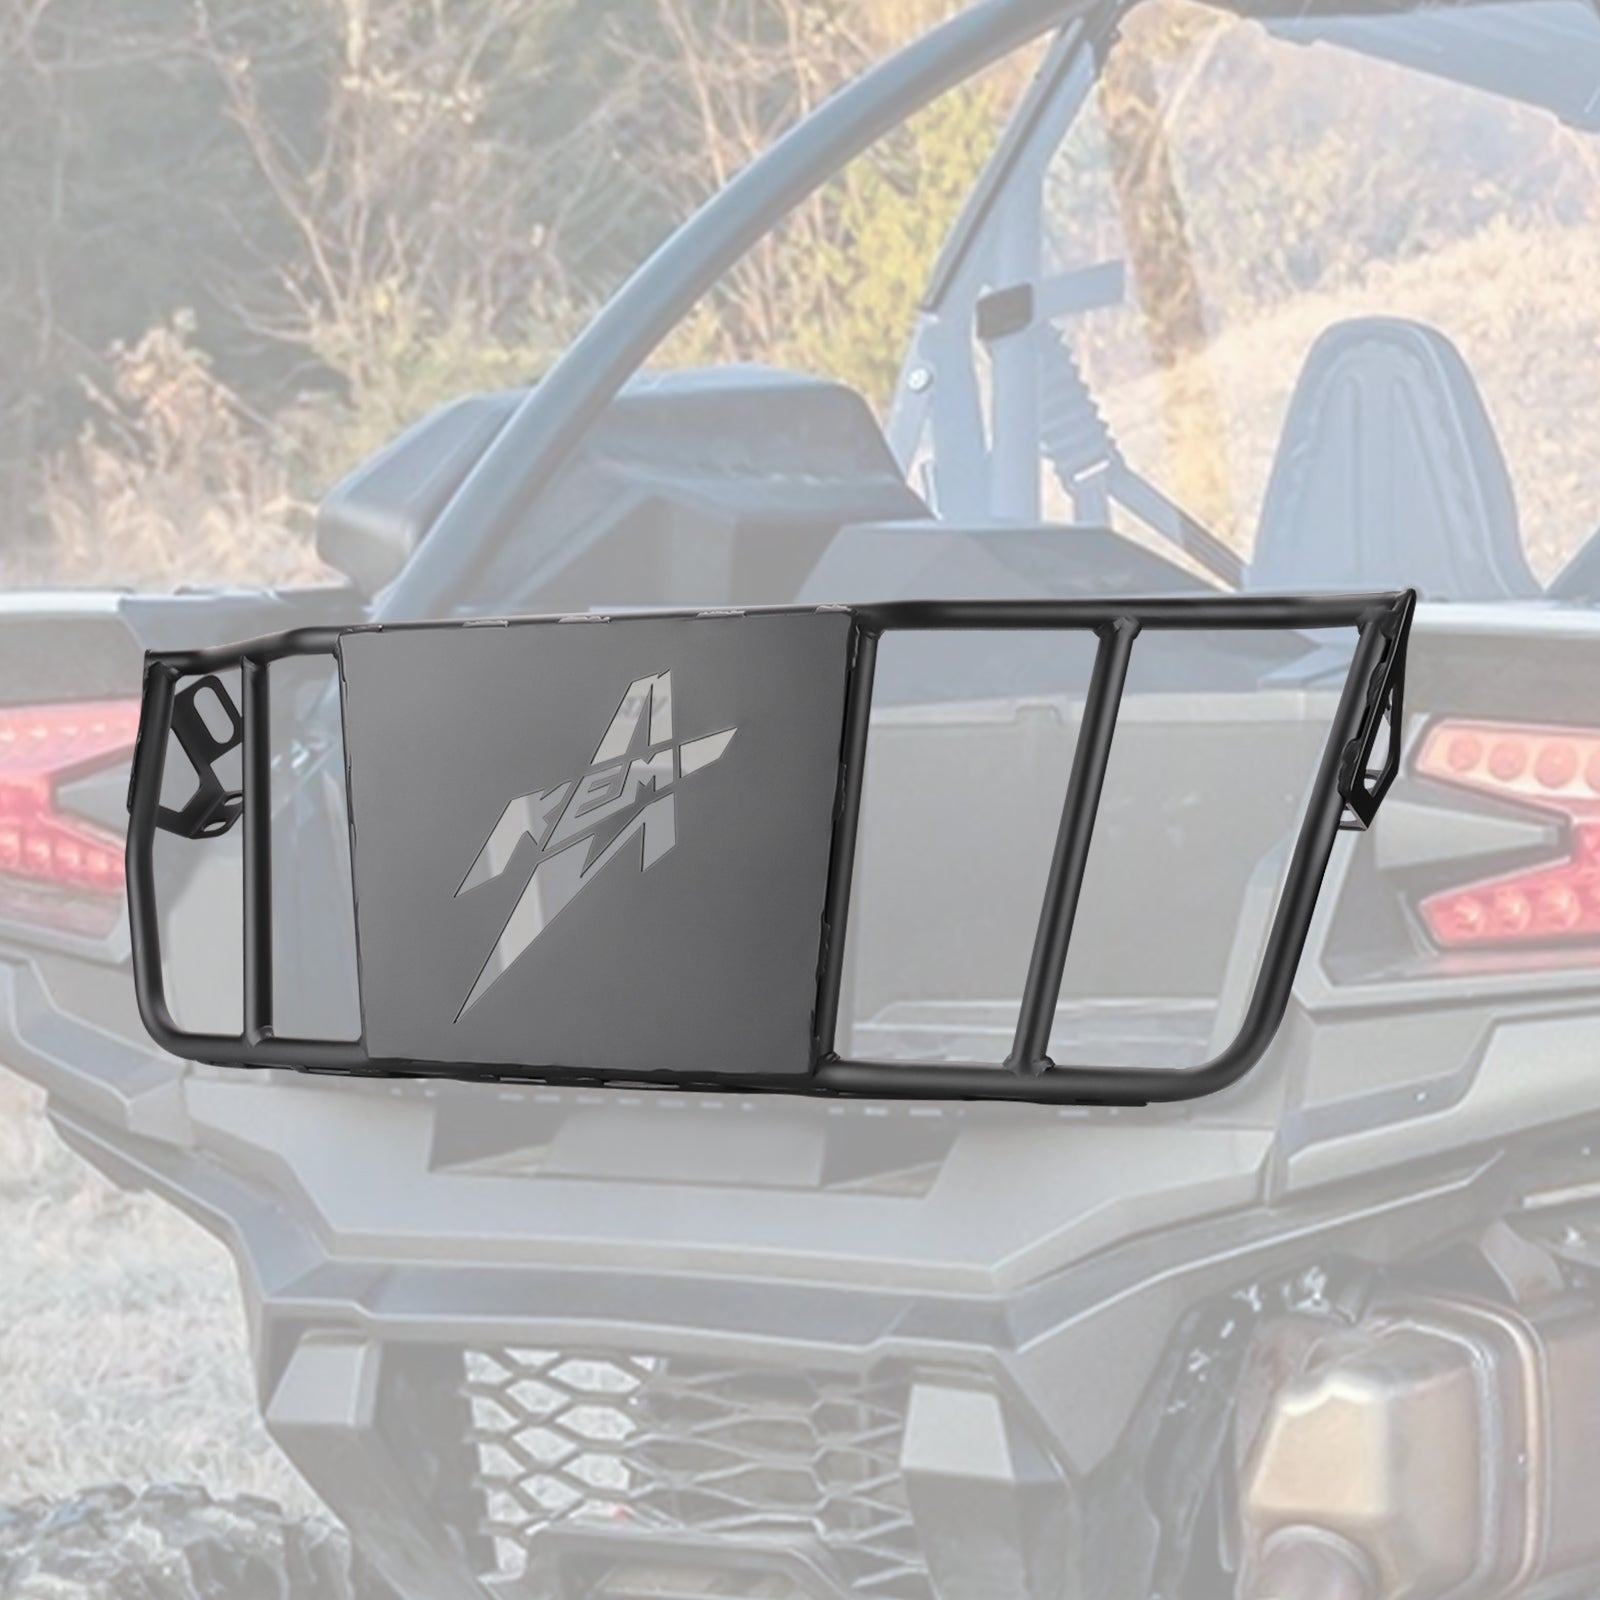 UTV Cargo Bed Enclosure Compatible with Kawasaki Teryx KRX 1000 - KEMIMOTO